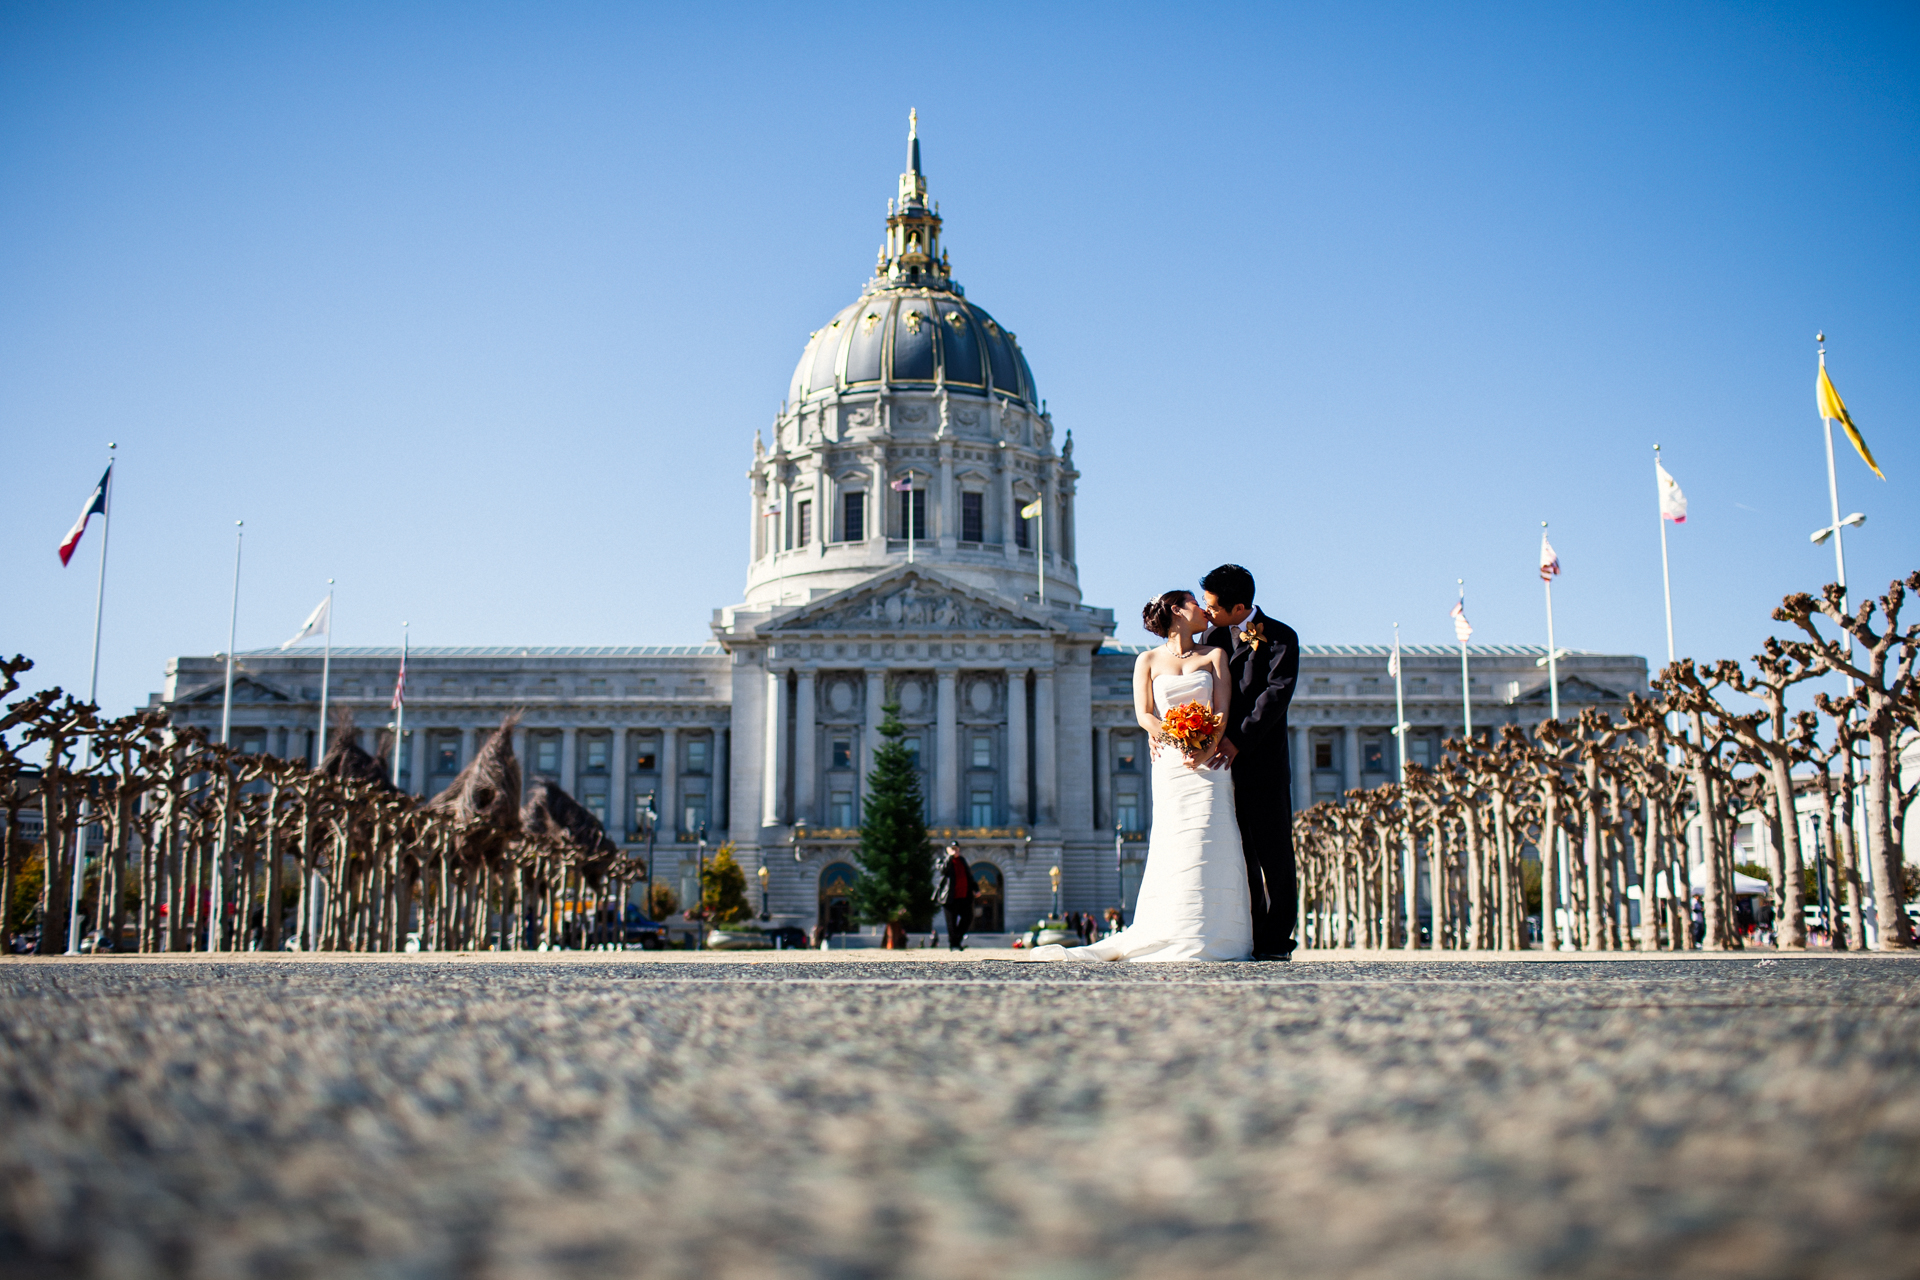 SF, California Civil Elopement Couple Image - A lovely kiss